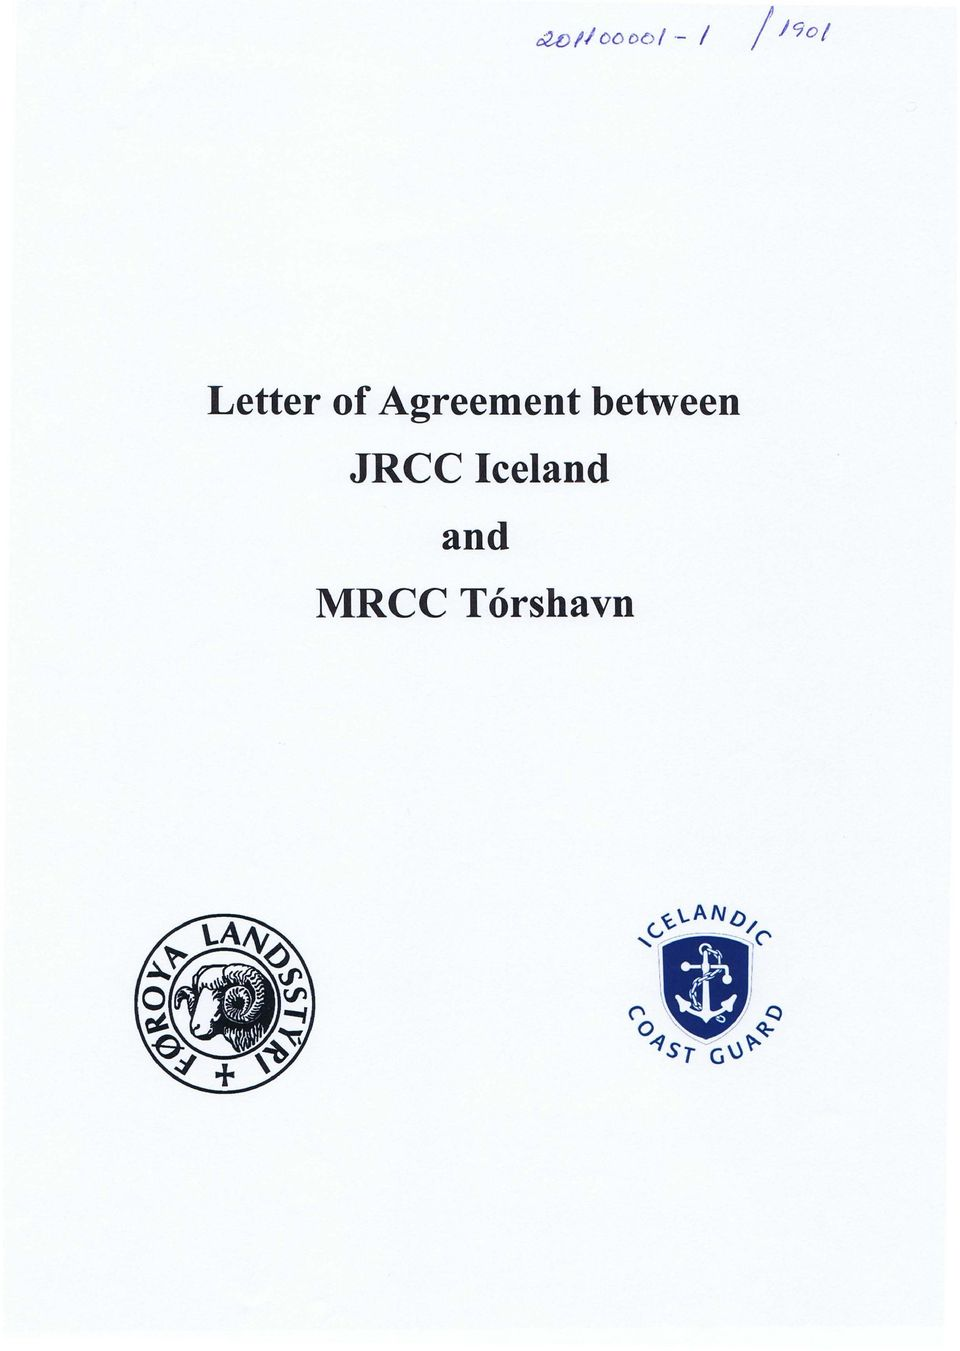 Agreement between